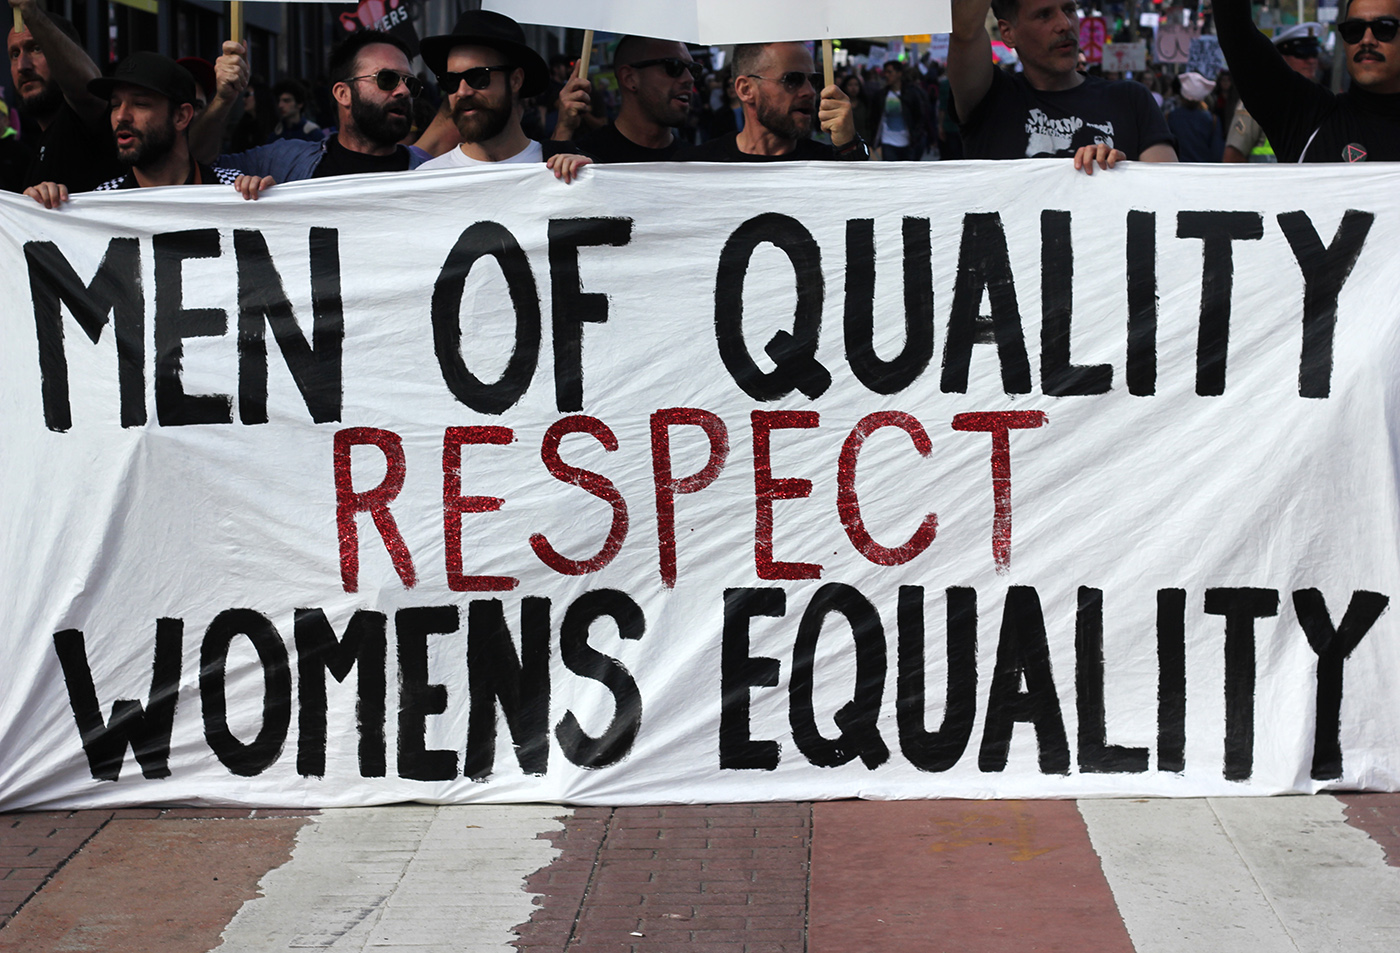 Men of Quality Respect...